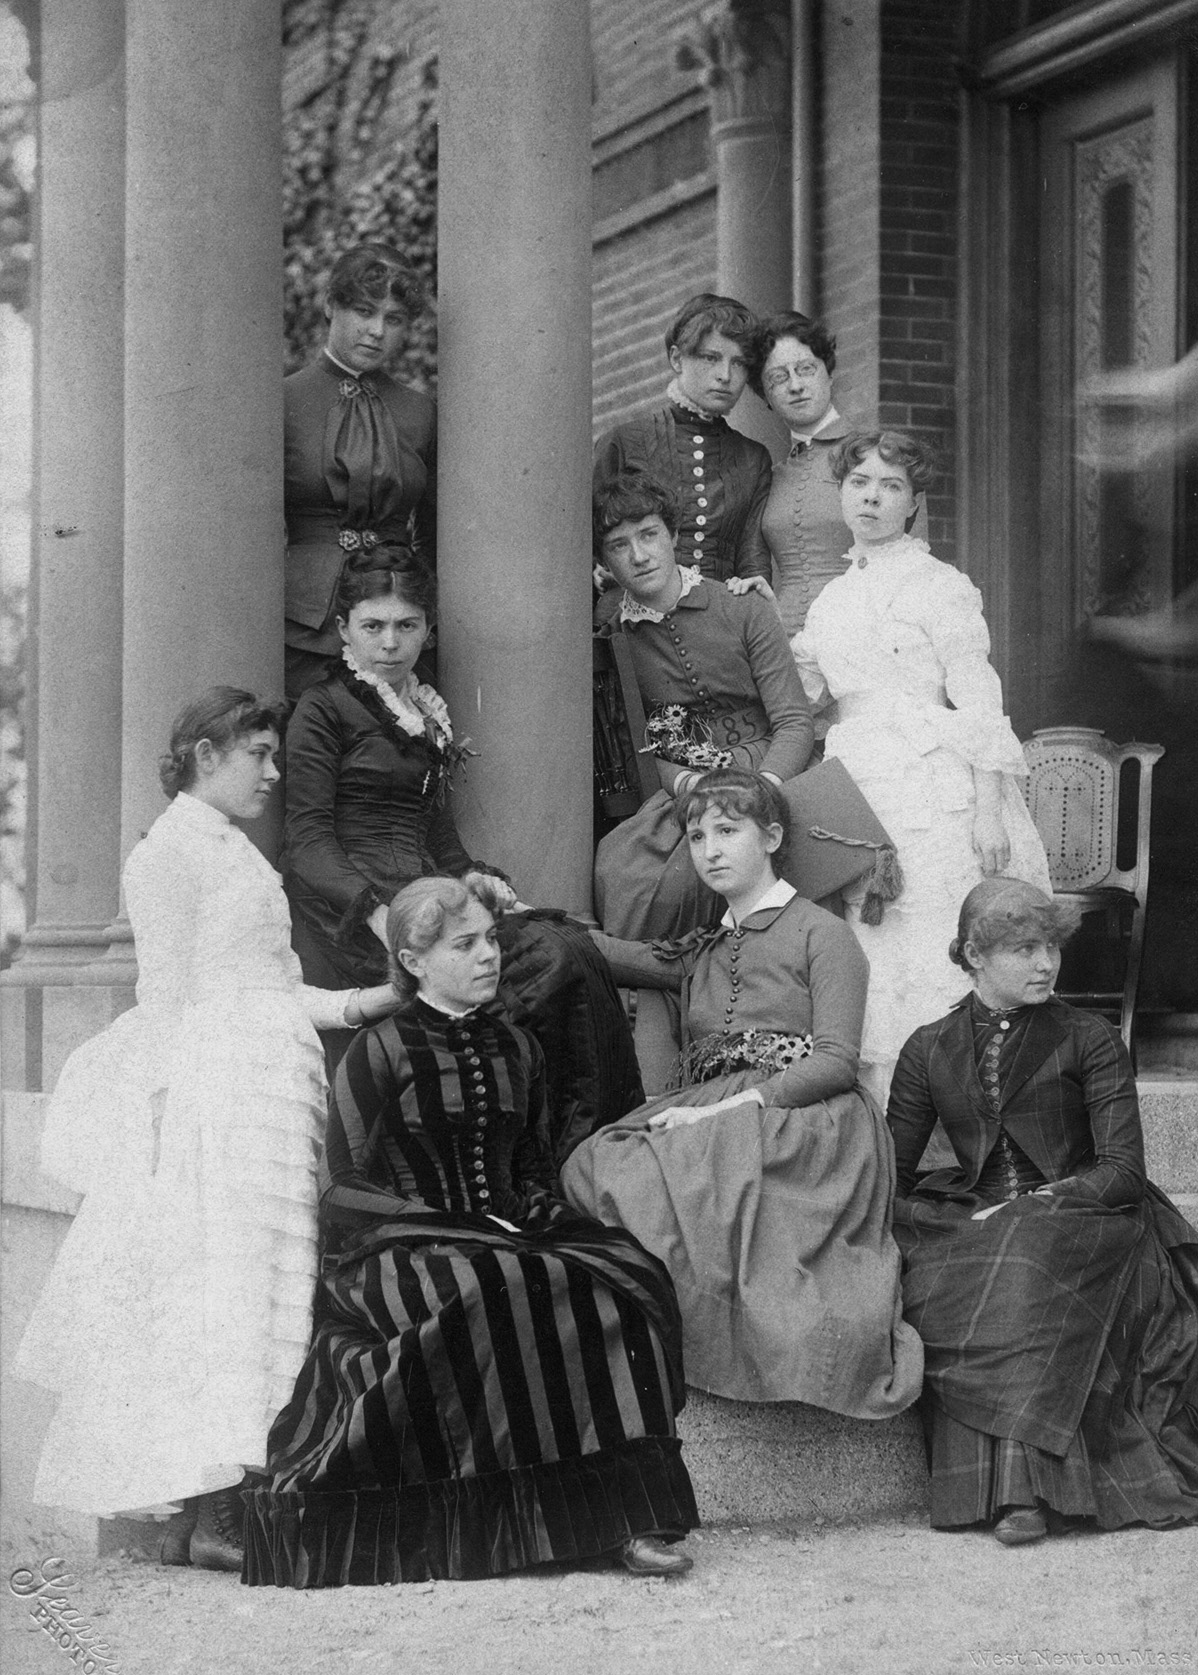 When Katharine returned to teach at Wellesley in 1885, she was greeted by young president Alice Freeman, second from left standing next to the column, appointed when she was 26 years old. Photo courtesy of Melinda M. Ponder and the Wellesley College Archives